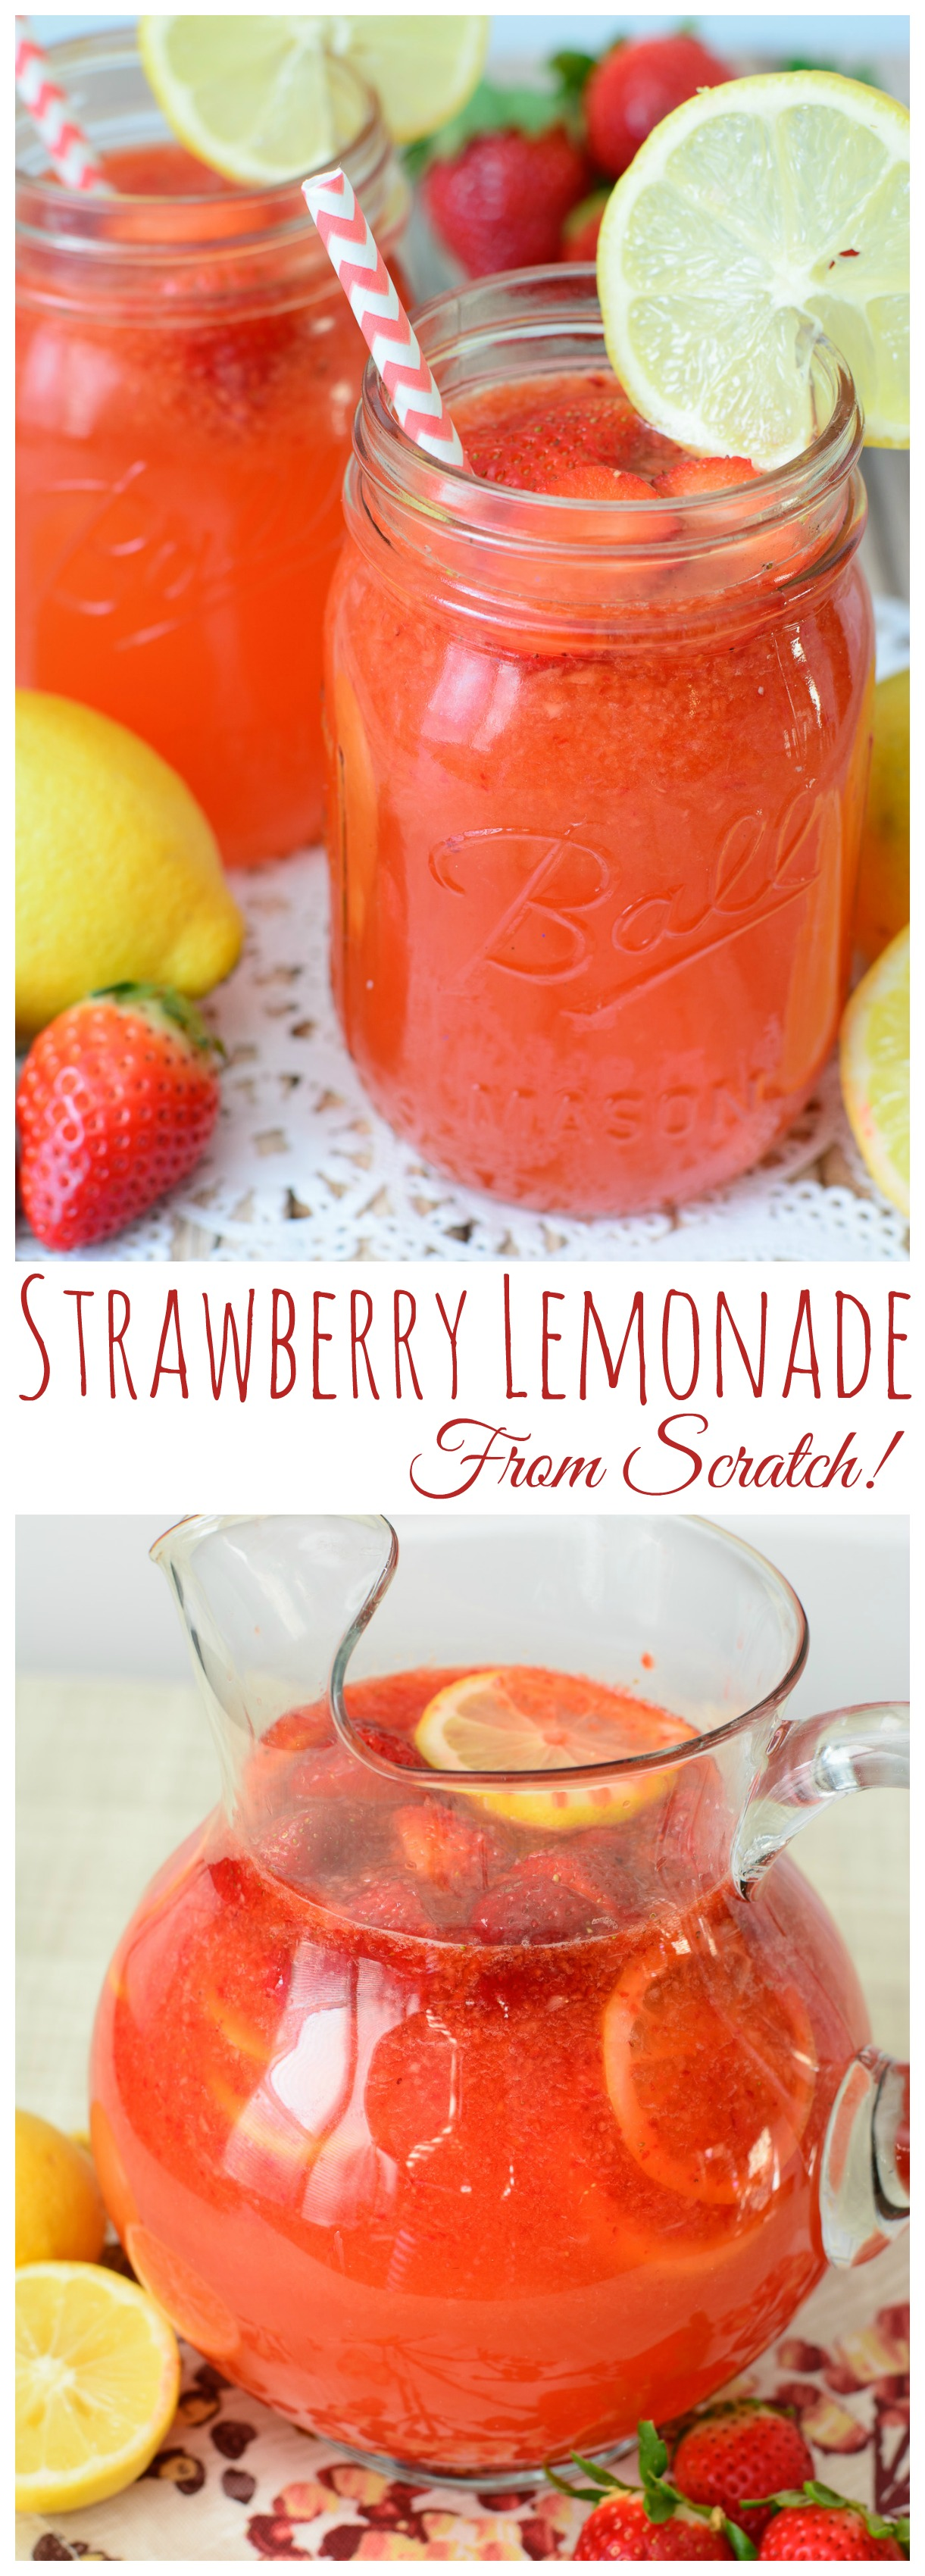 This Strawberry Lemonade recipe is wonderfully refreshing & sweet. Made from scratch with fresh lemon juice and strawberries, everyone is sure to love this recipe!